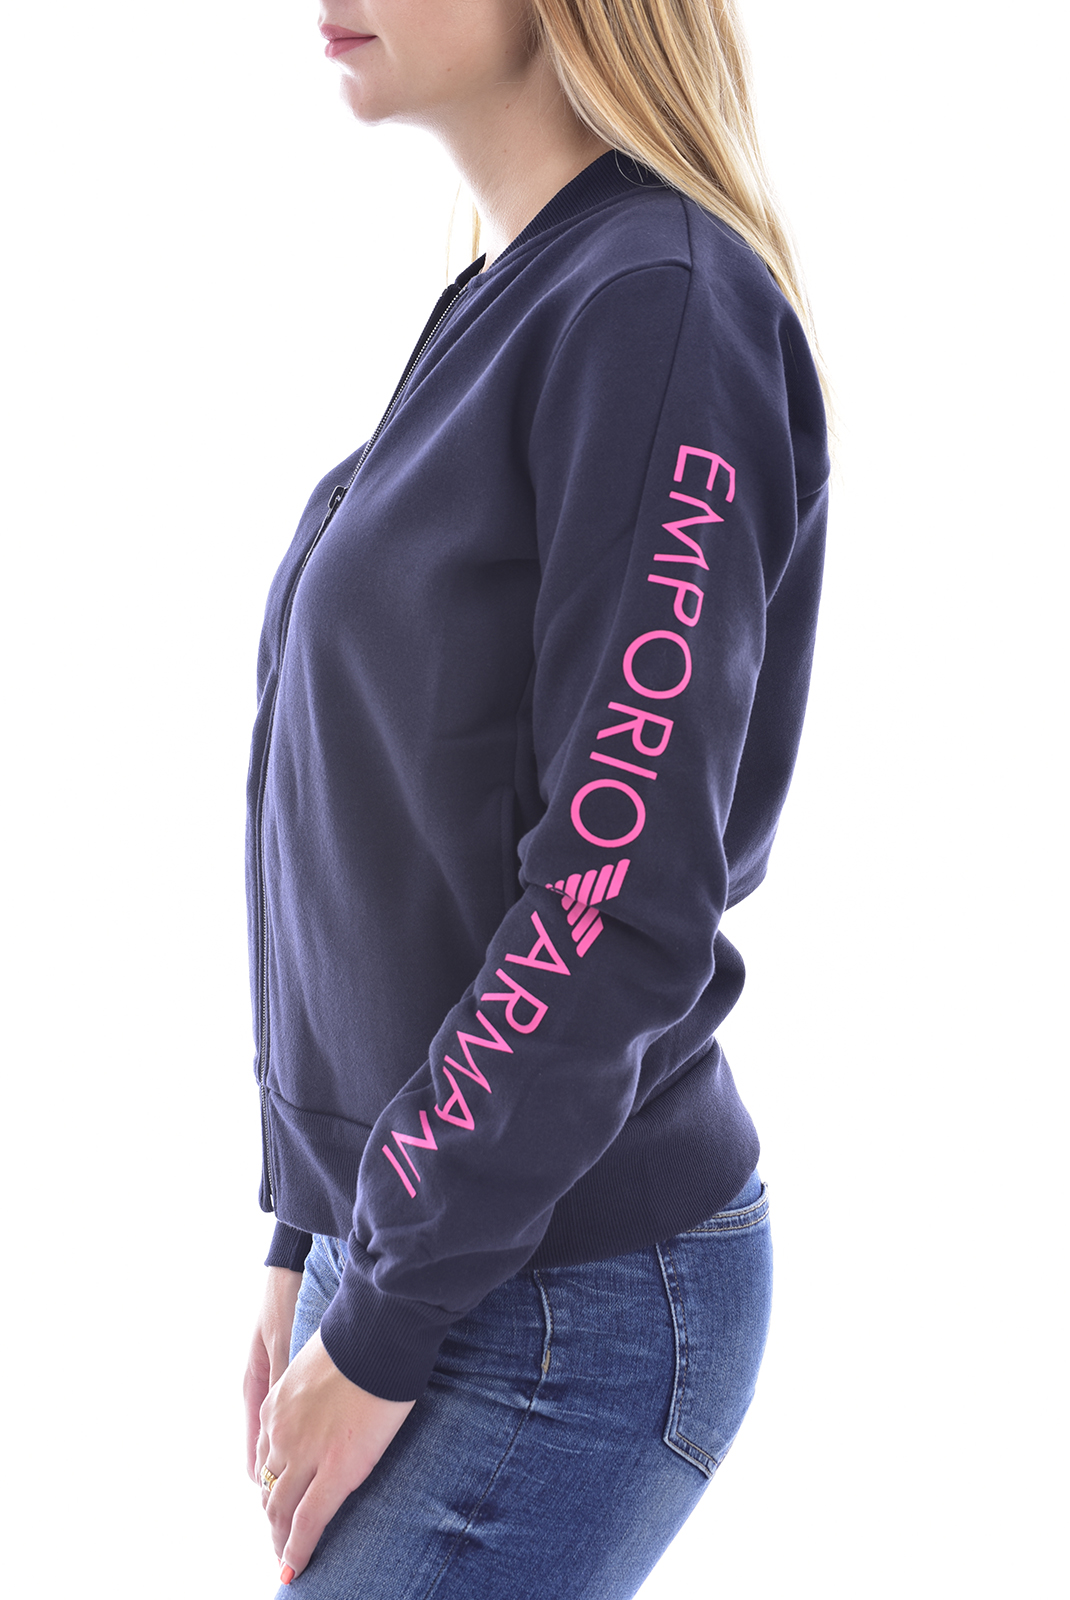 Sweat / sweat zippé  Emporio armani 164384 0A250 0637 BLUE NAVY